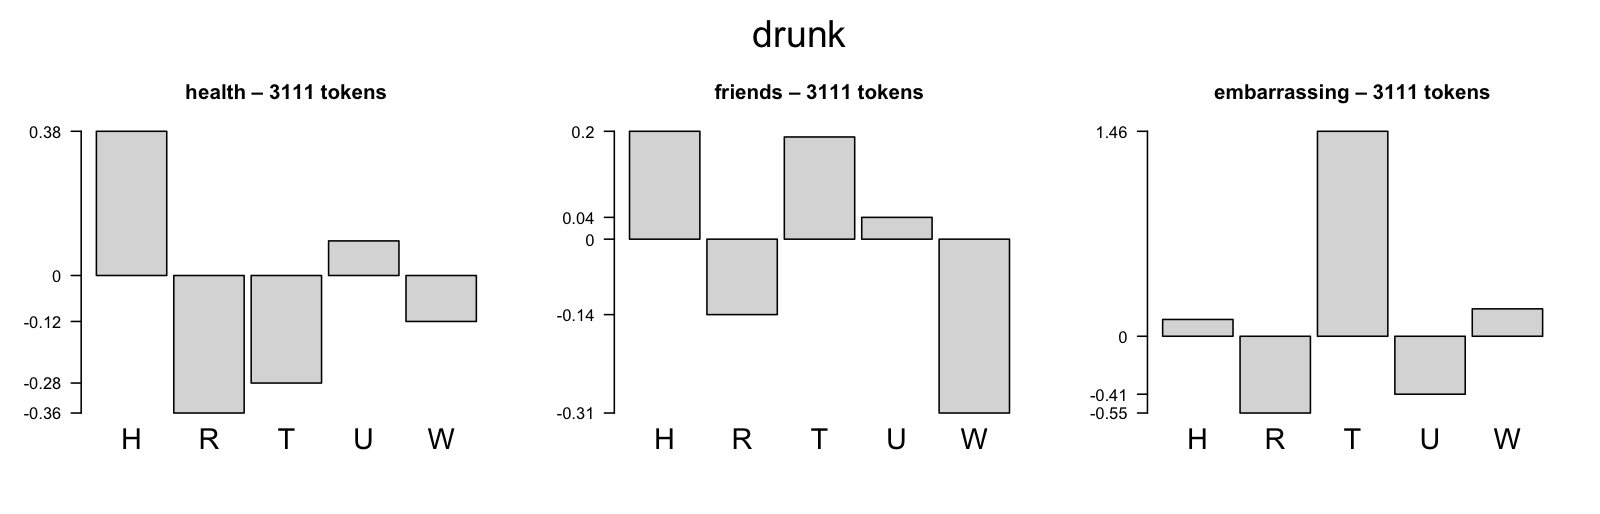 figures/groups-drunk.png